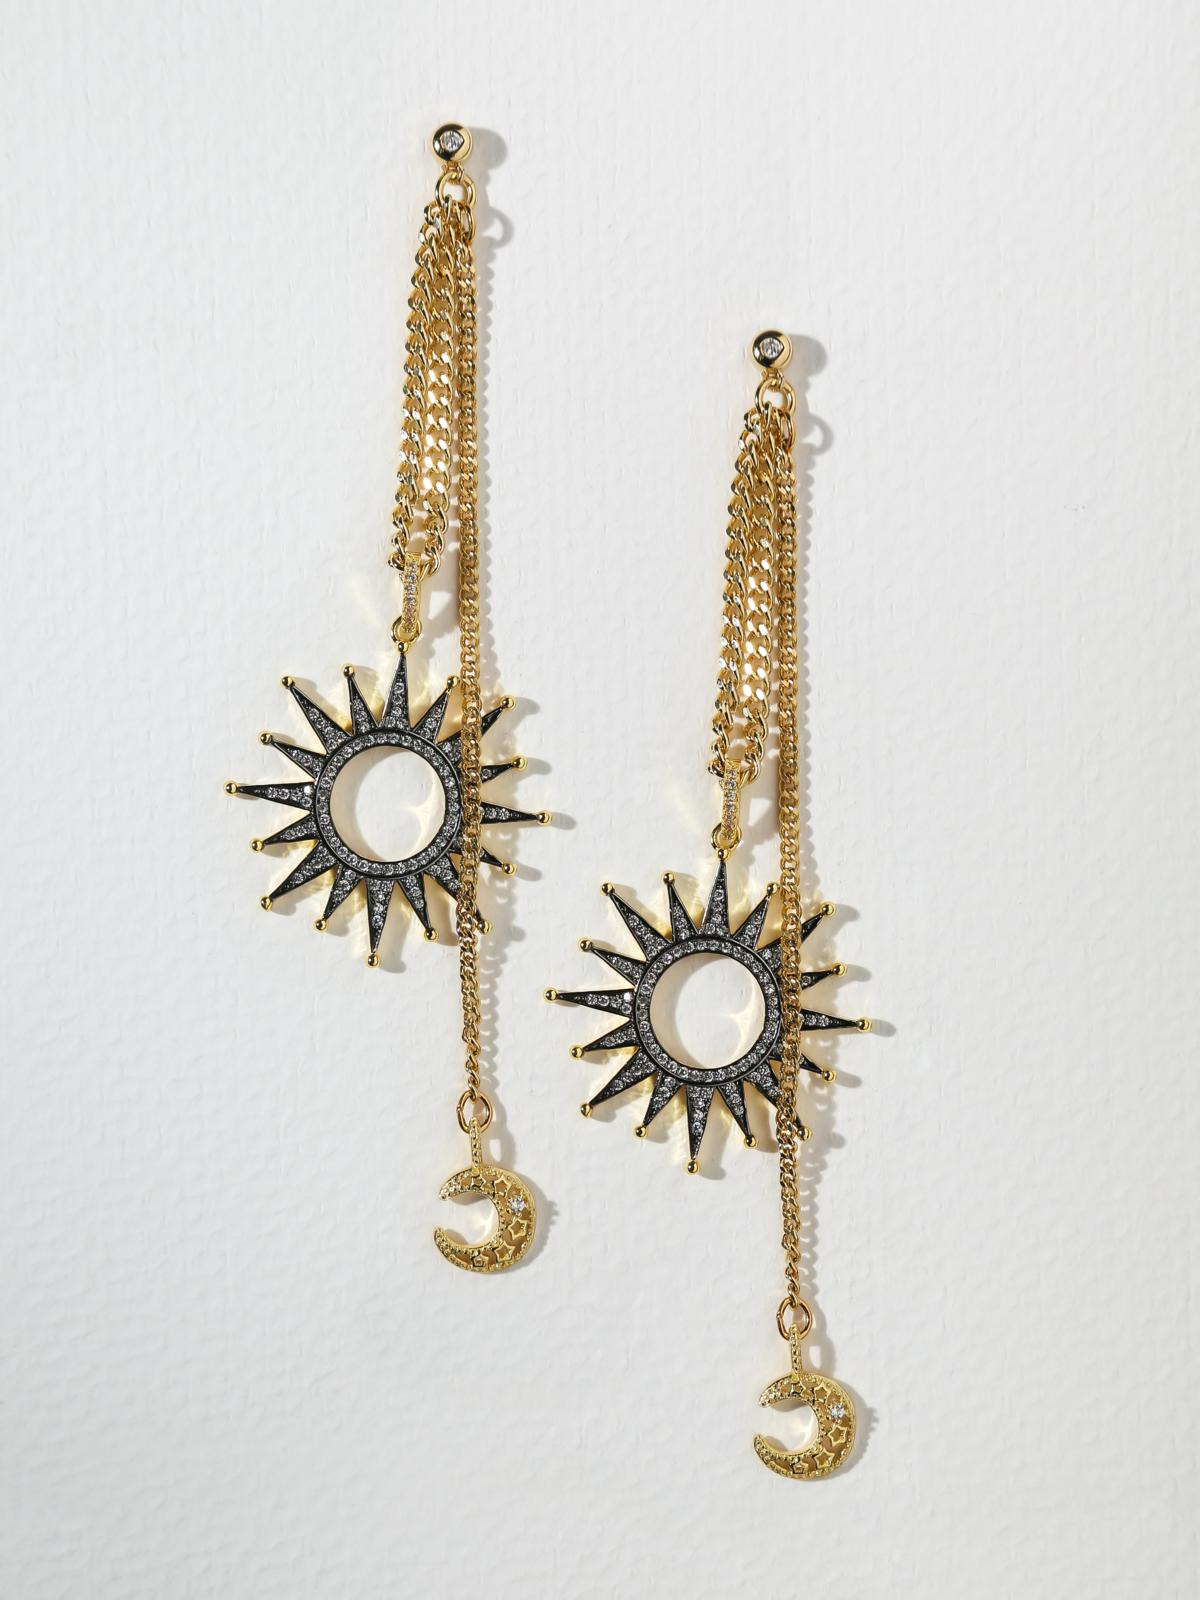 The Moonbeam Earrings